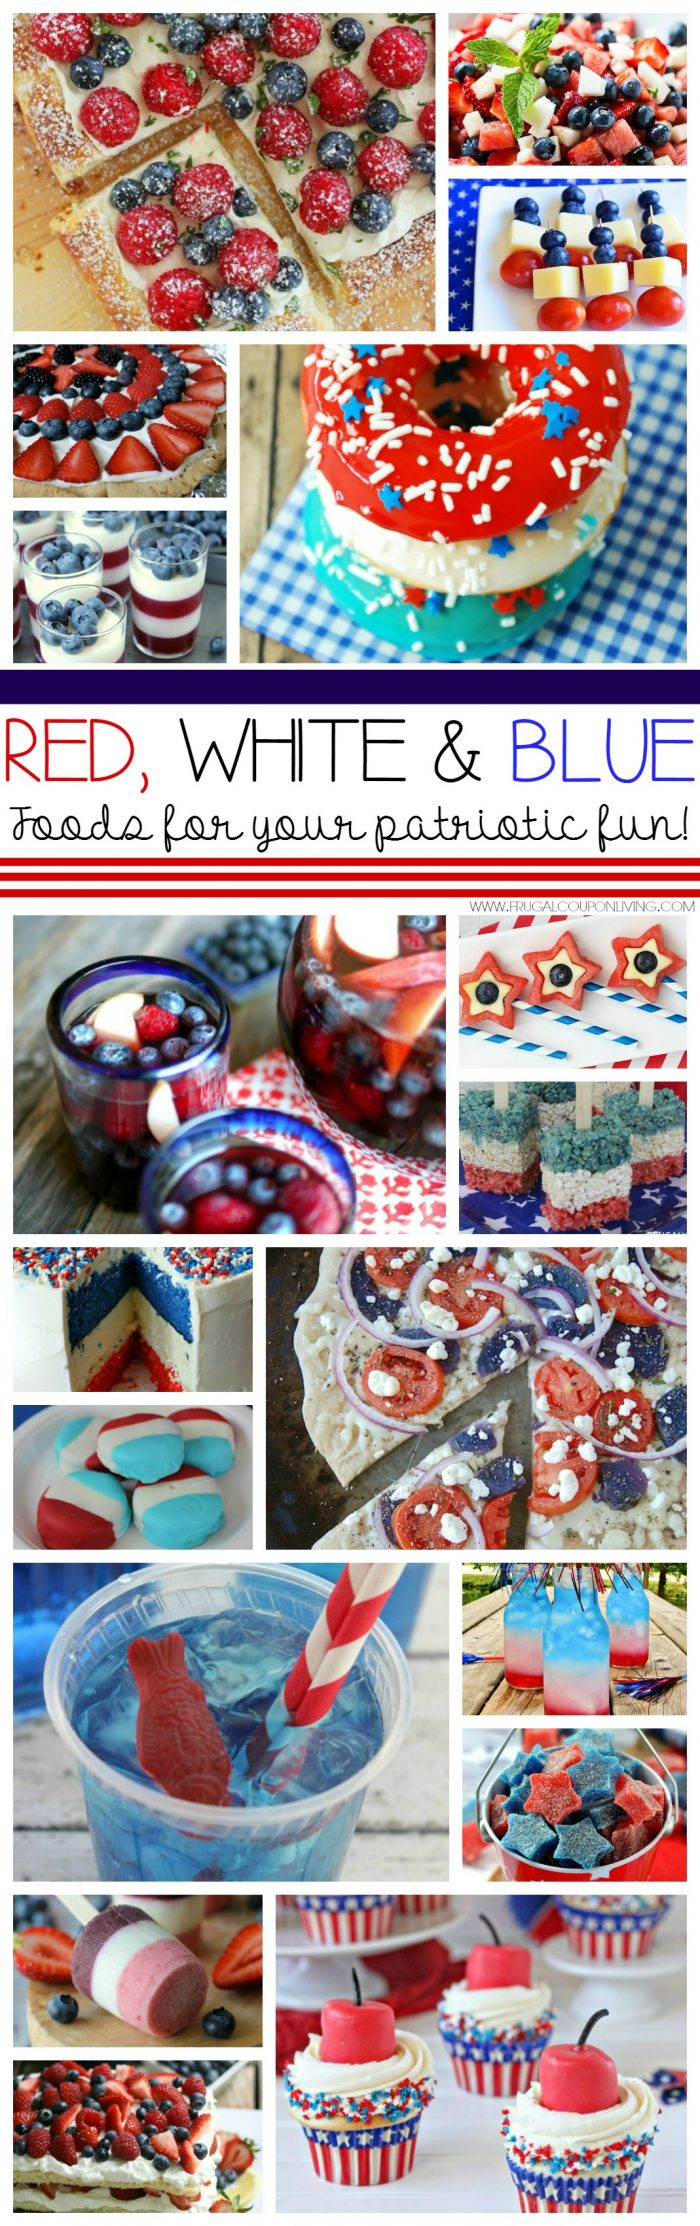 red-white-blue-foods-Collage-frugal-coupon-living